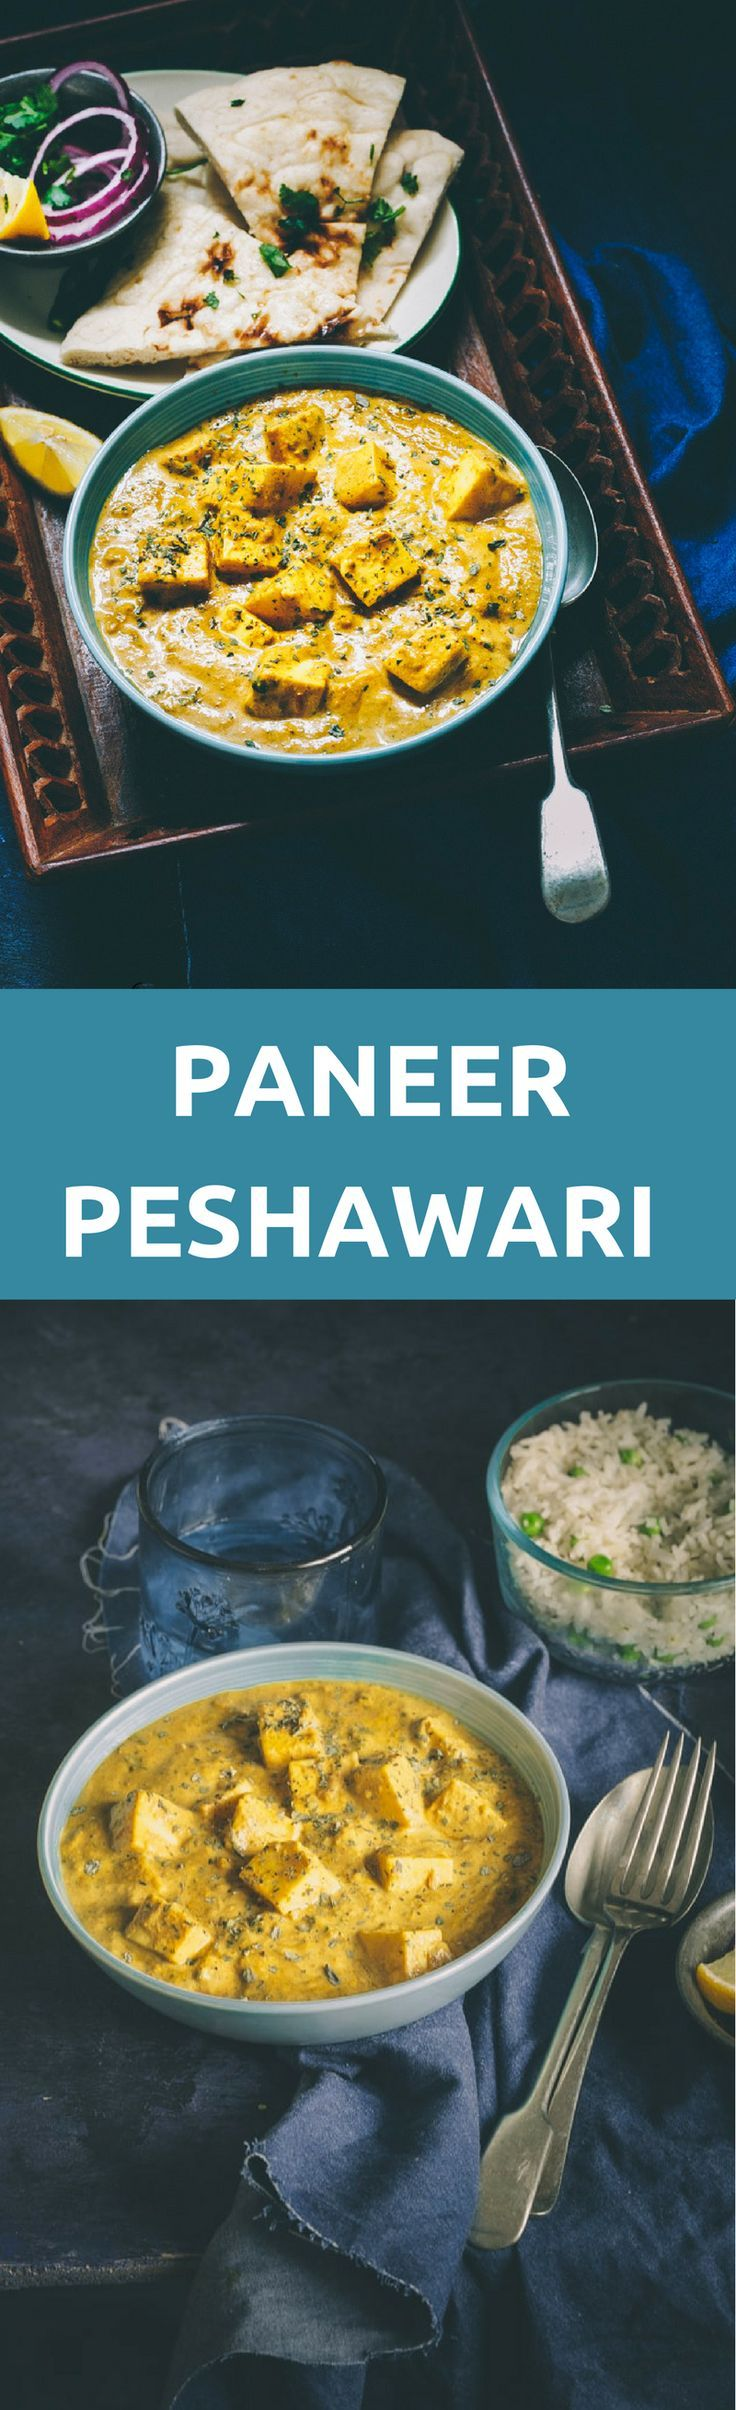 2140 best yummy indian food images on pinterest indian recipes paneer peshawari indian food vegetarianindian food recipesindian forumfinder